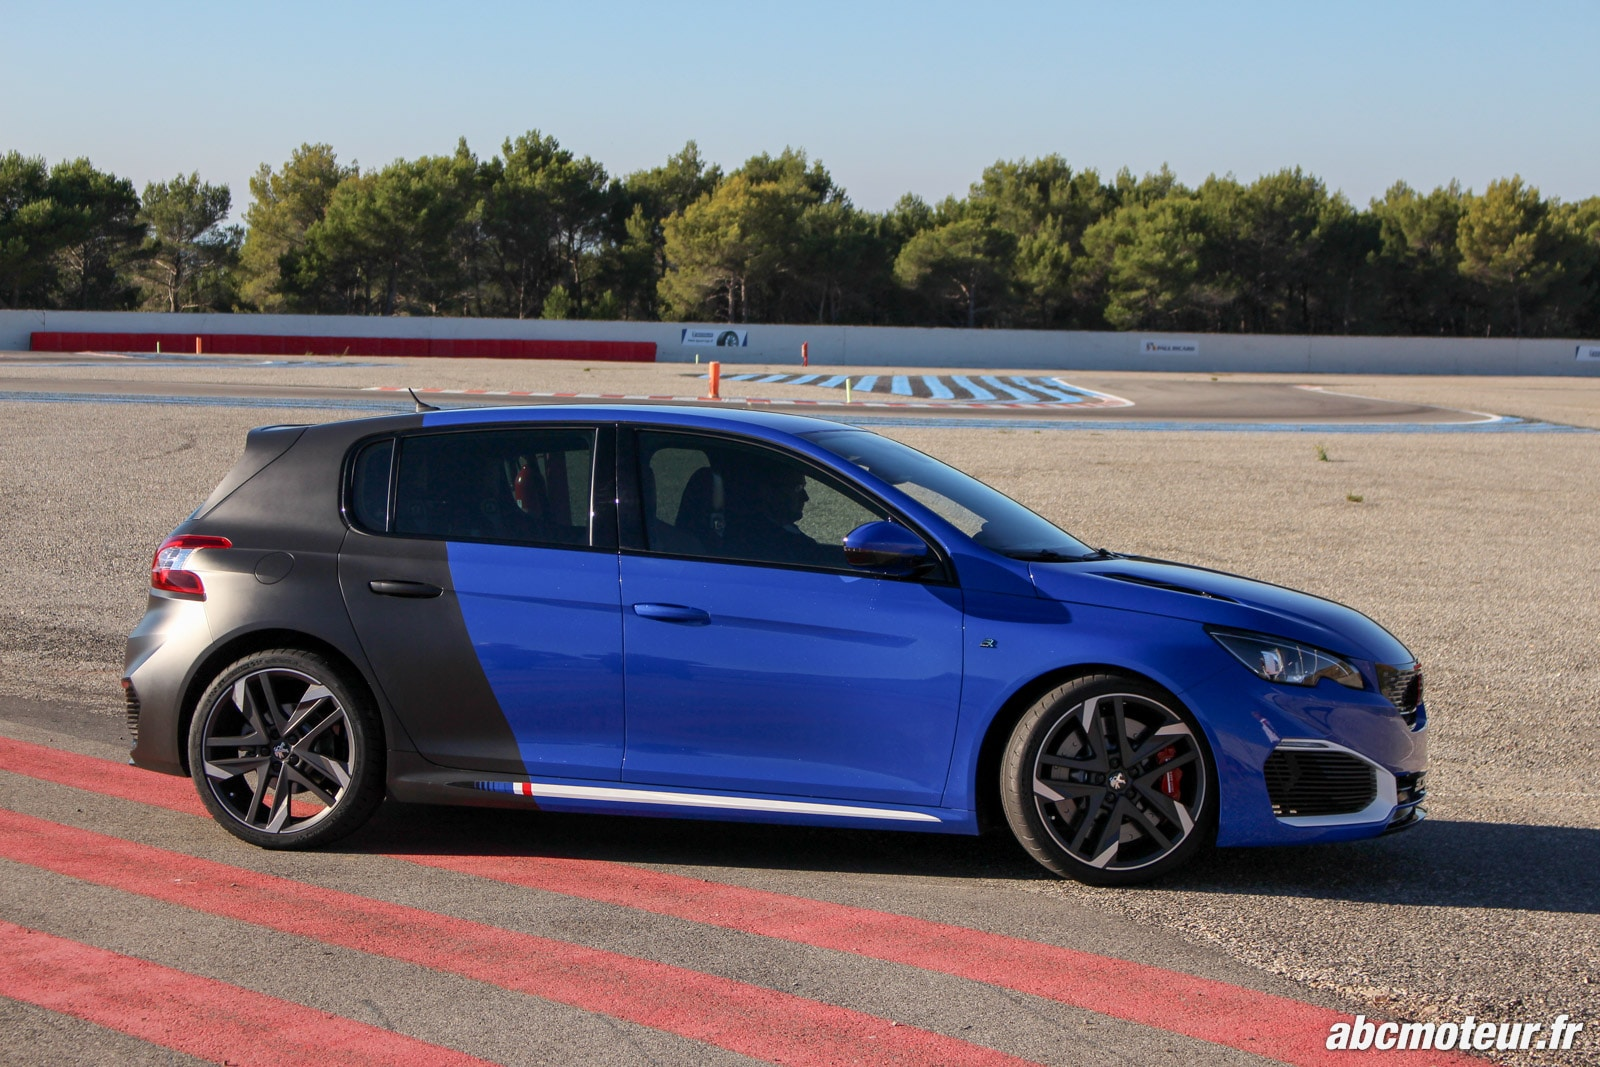 la peugeot 308 r hybrid fait le show sur le circuit du castellet. Black Bedroom Furniture Sets. Home Design Ideas